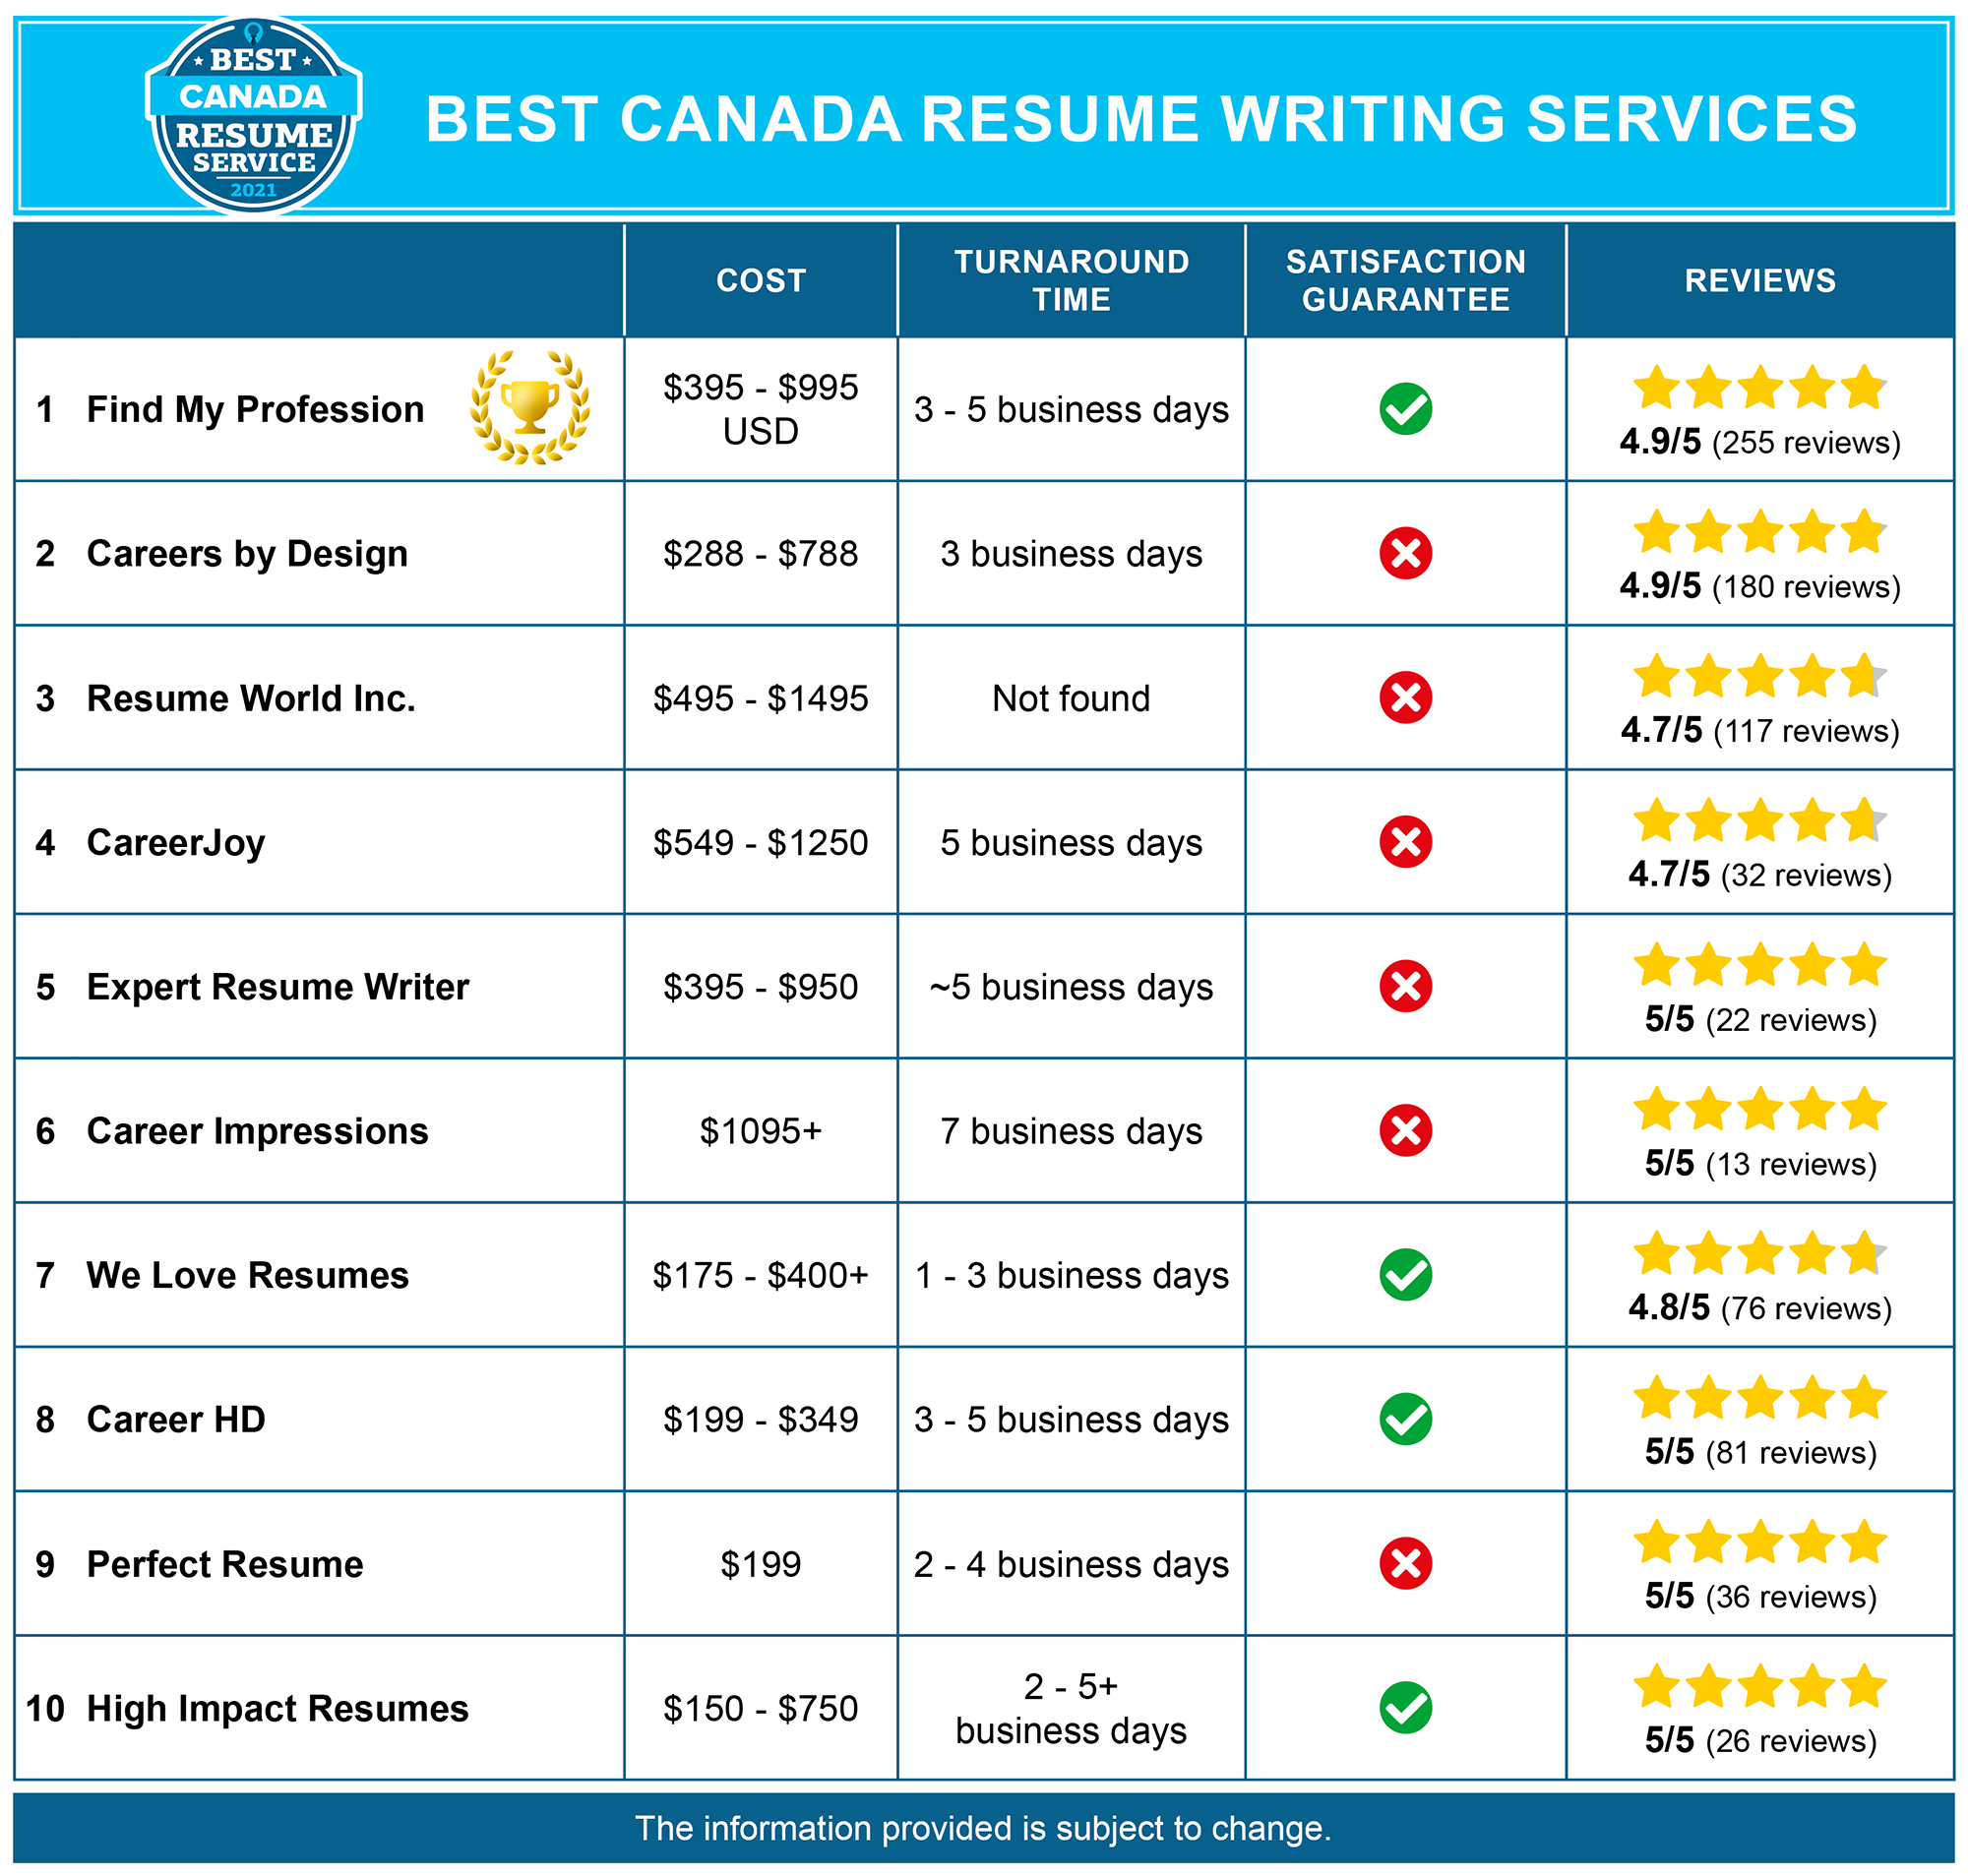 Best Canada Resume Writing Services